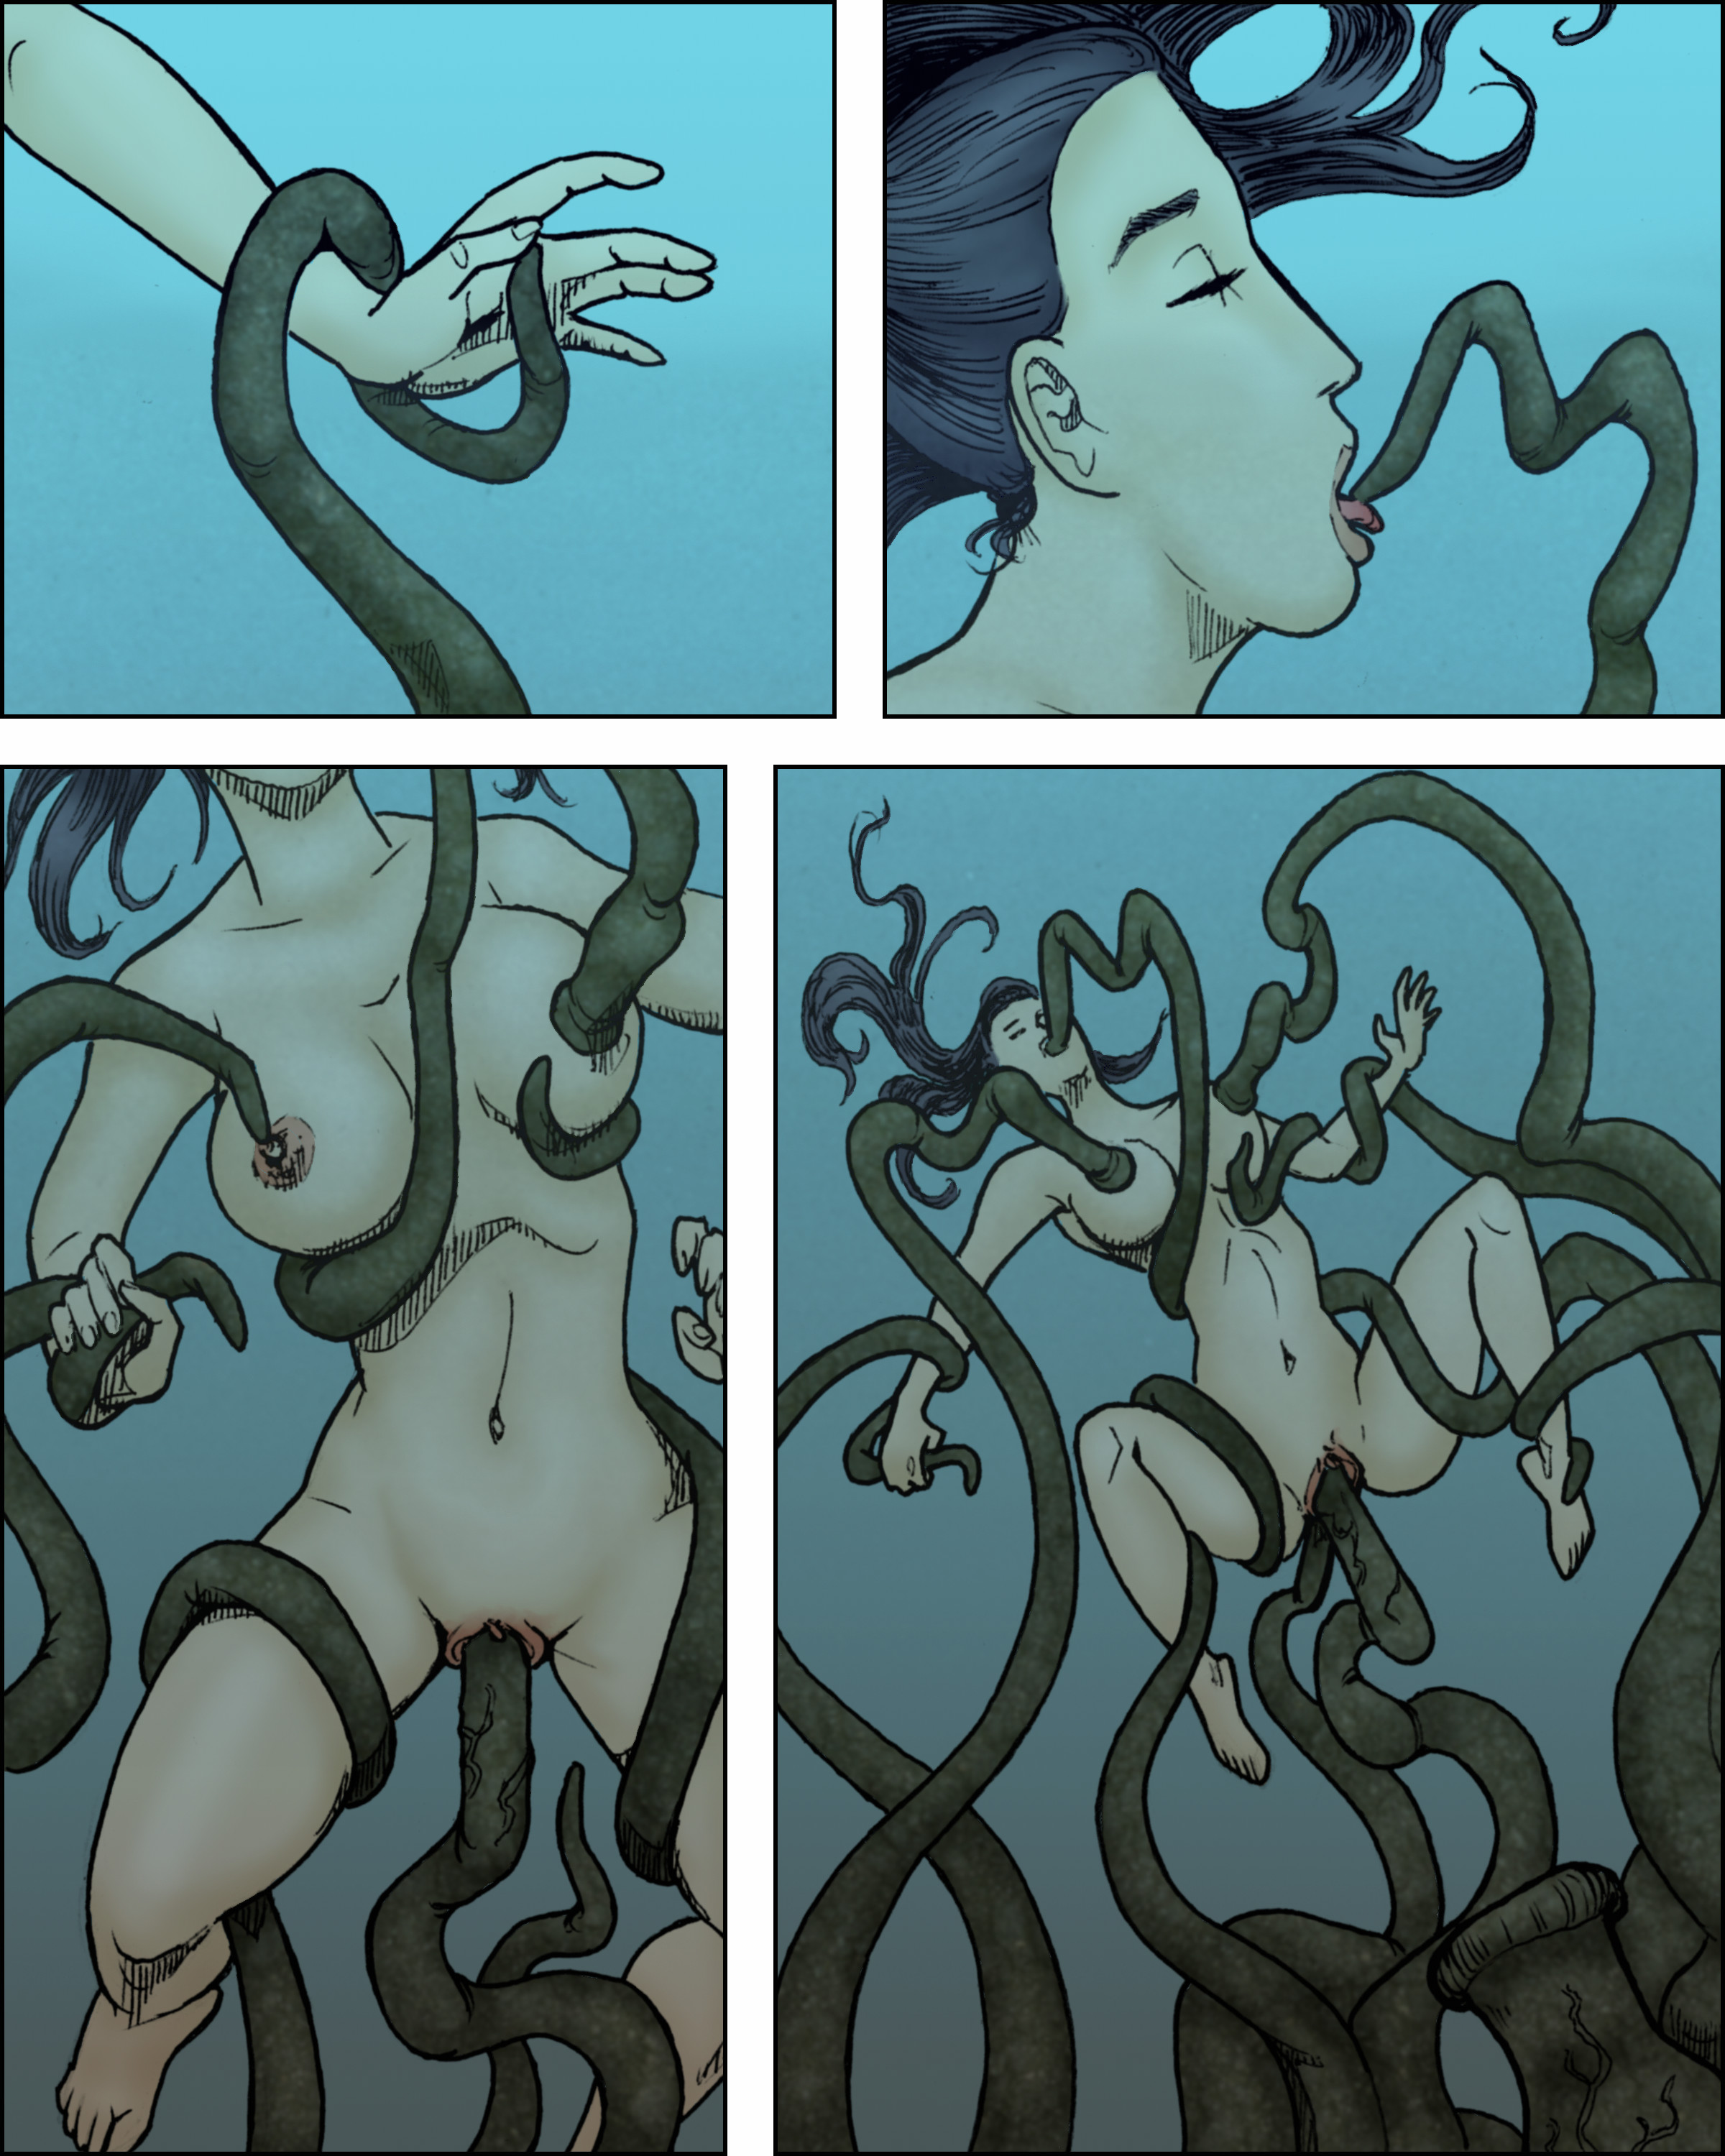 Hot tentacle sex, penetration phase.